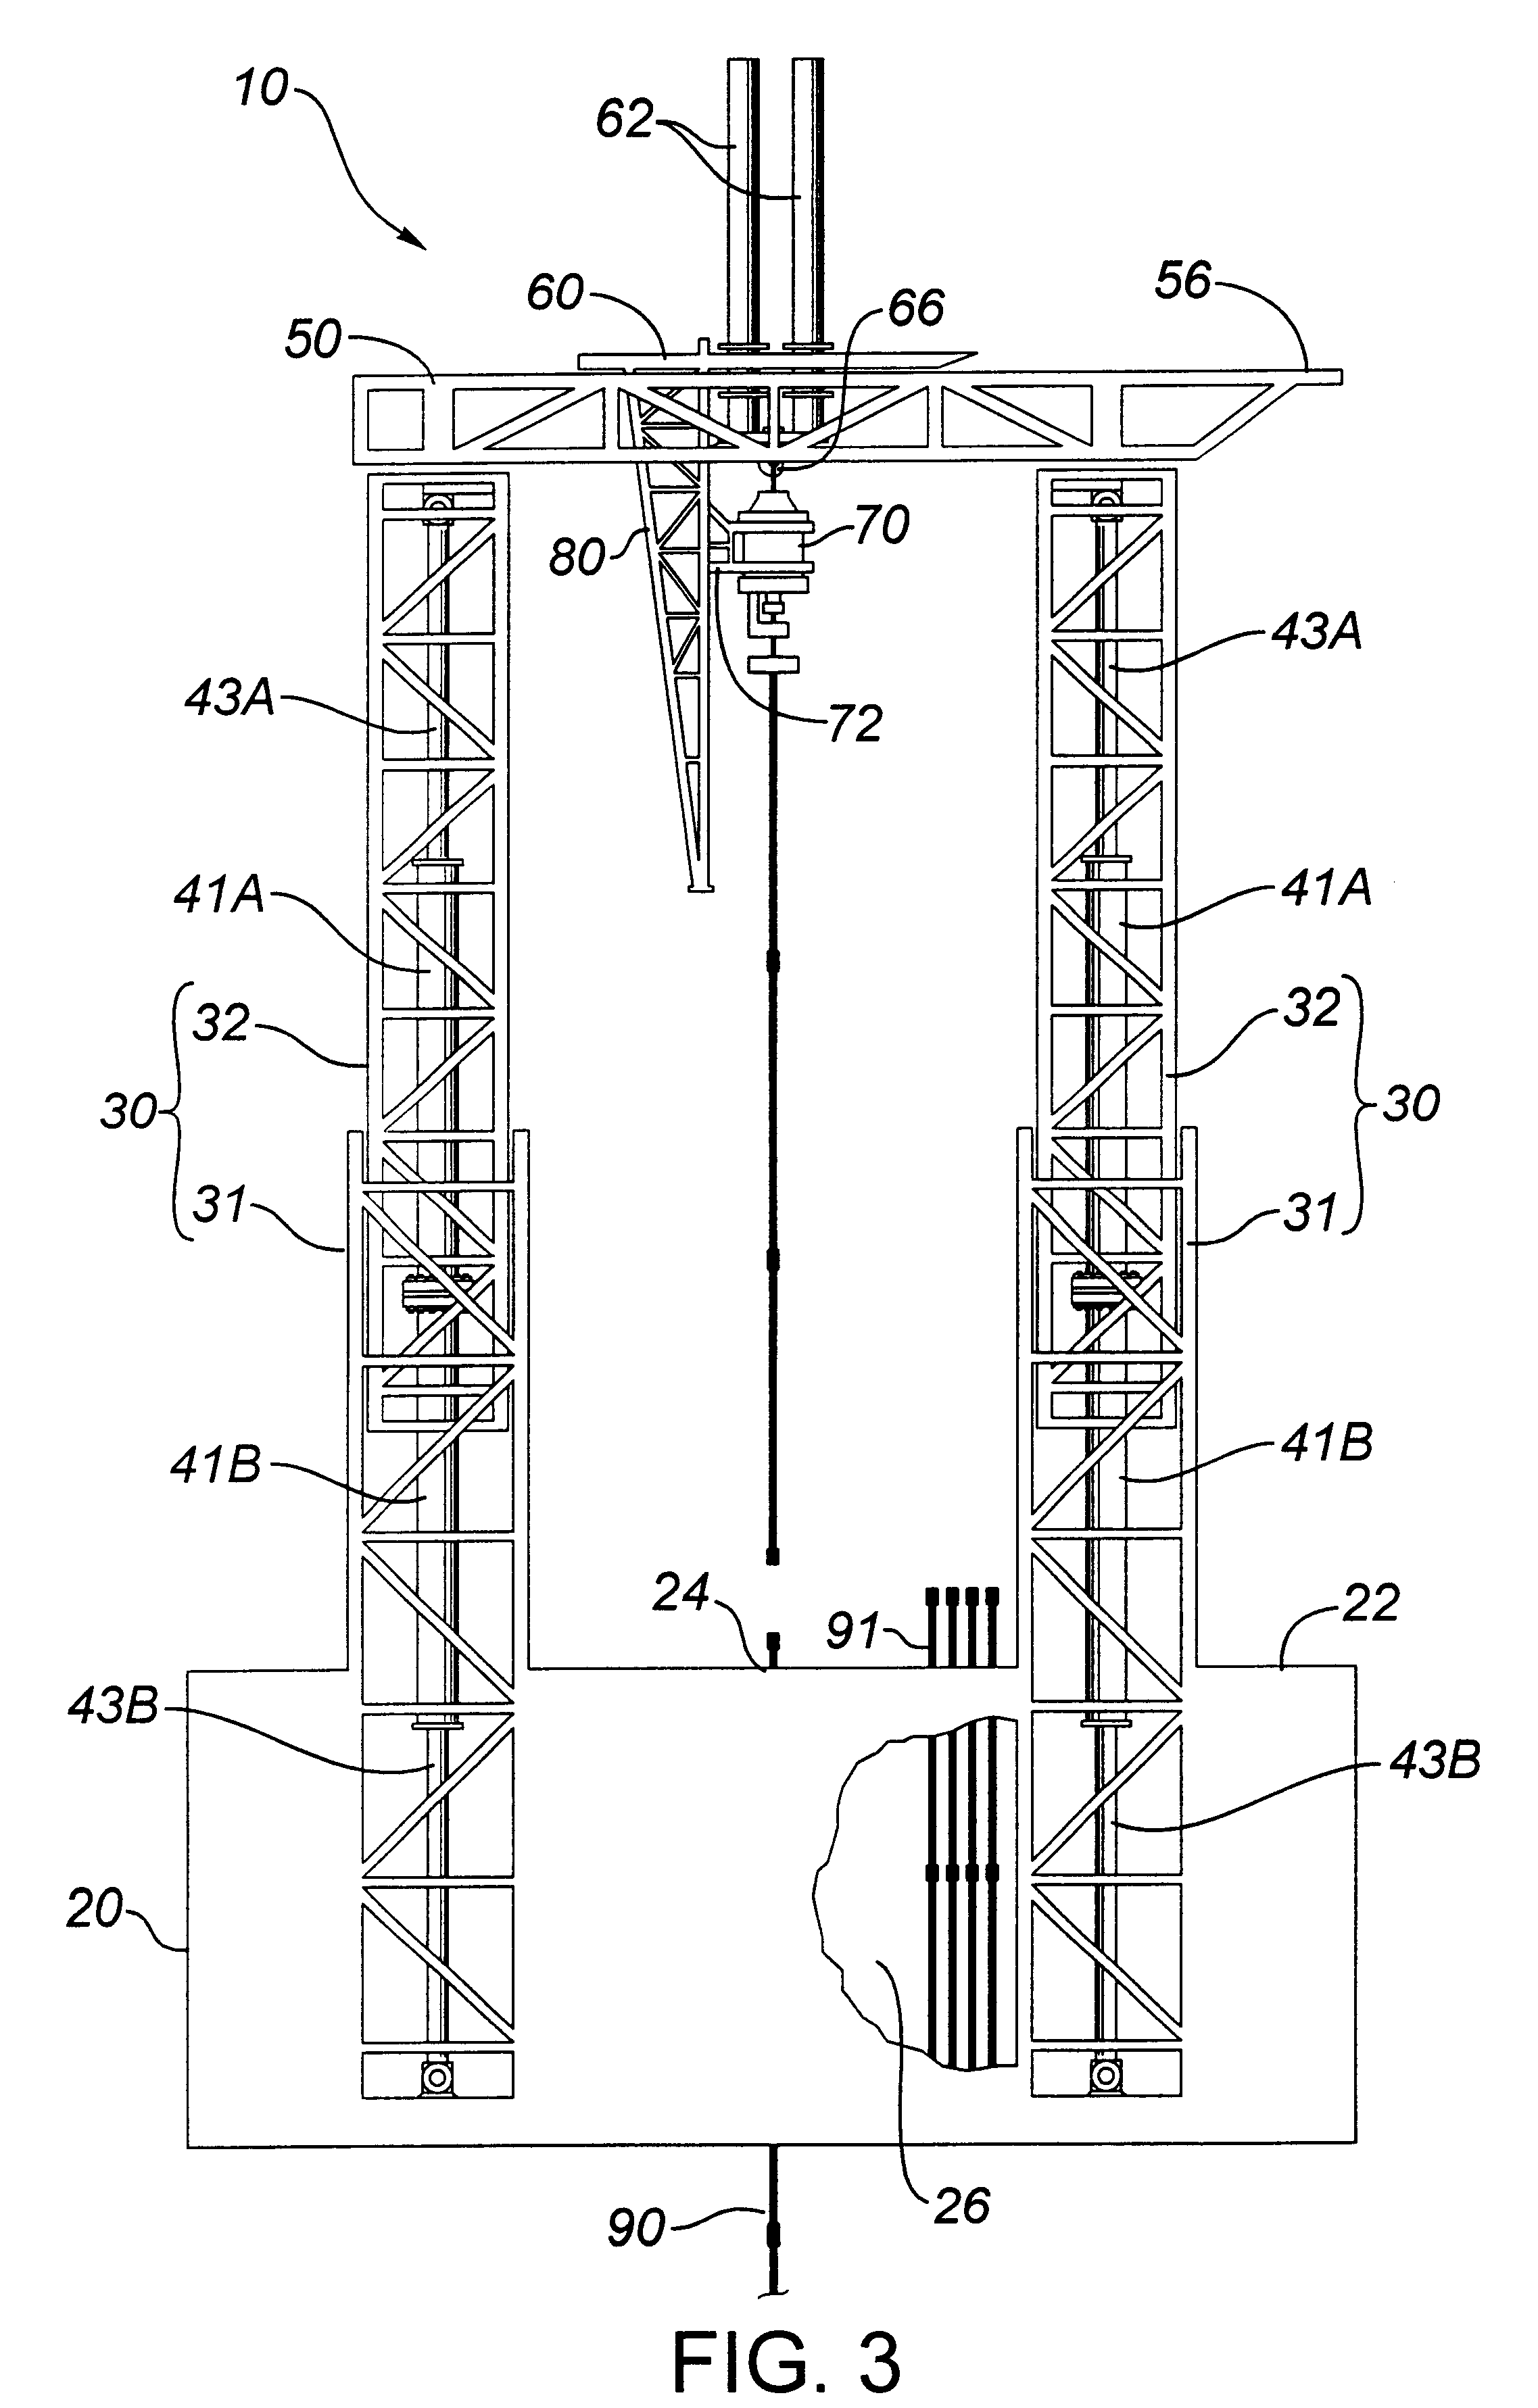 Rig Floor Elevation : Patent us hydraulic drilling rig google patents